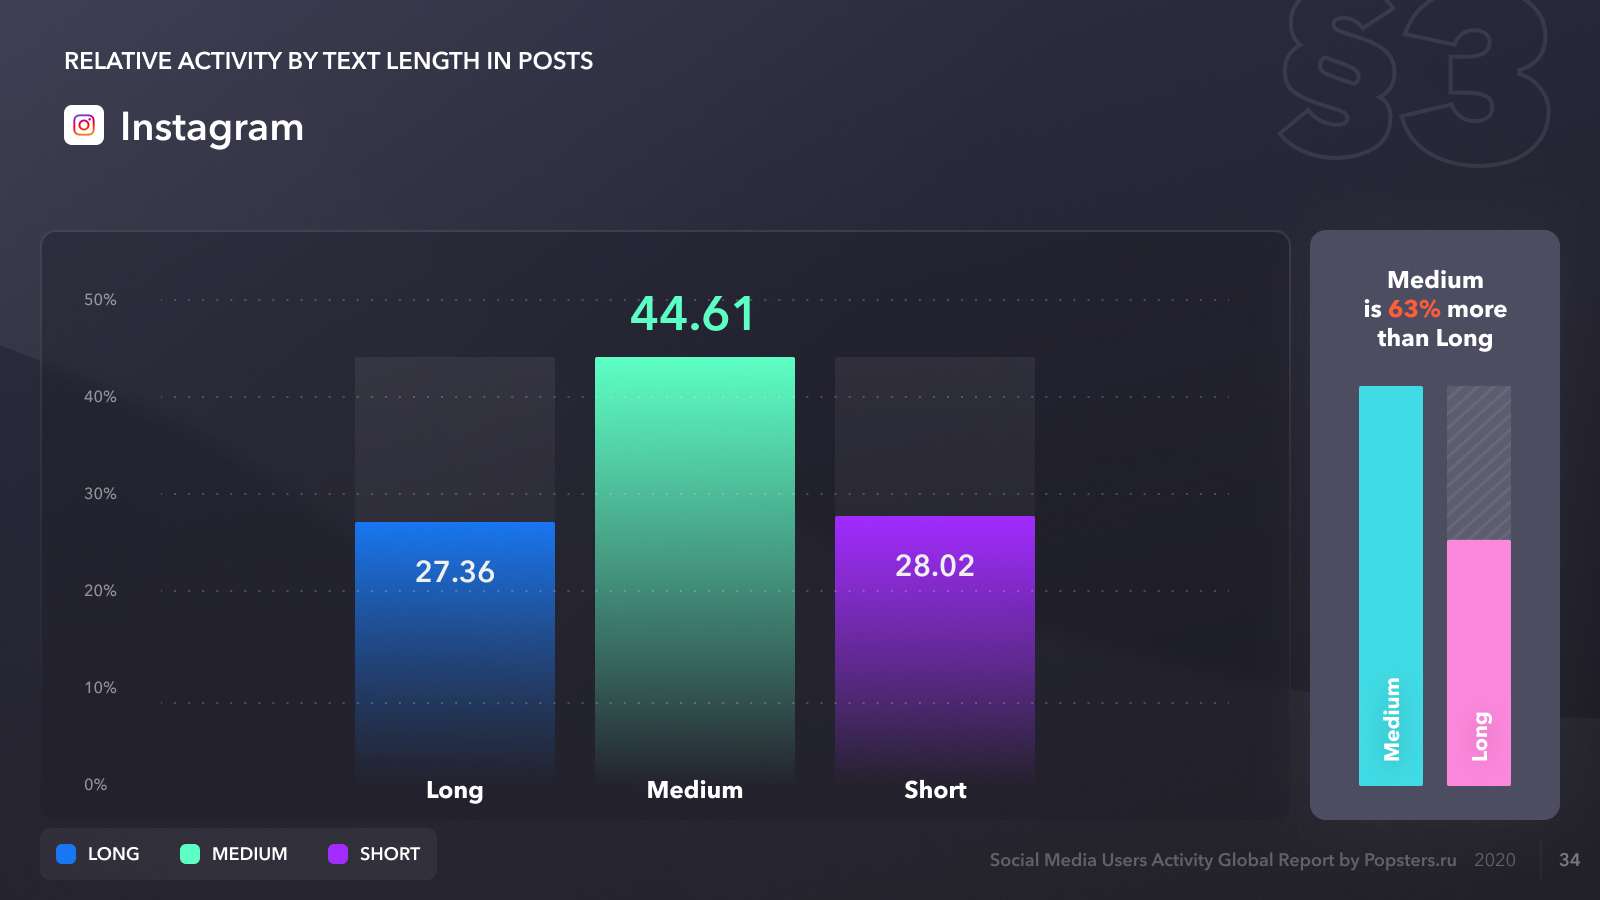 Relative activity on Instagram by text length in posts, 2020